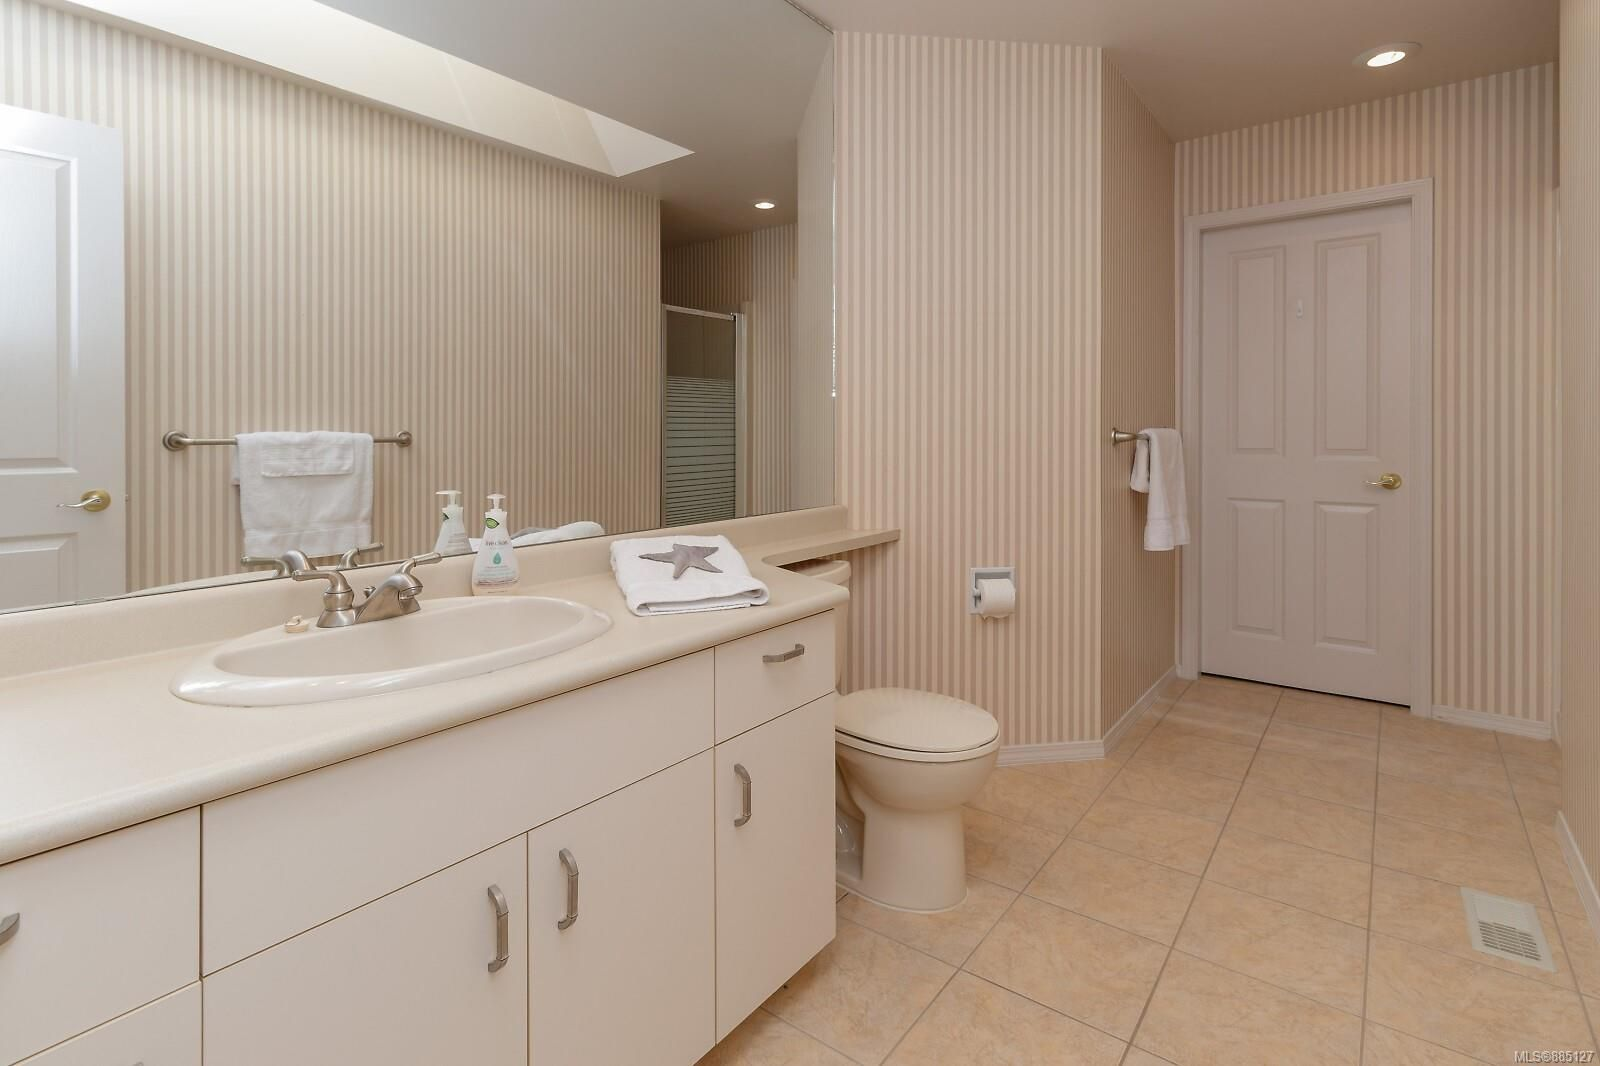 Photo 39: Photos: 26 529 Johnstone Rd in : PQ French Creek Row/Townhouse for sale (Parksville/Qualicum)  : MLS®# 885127